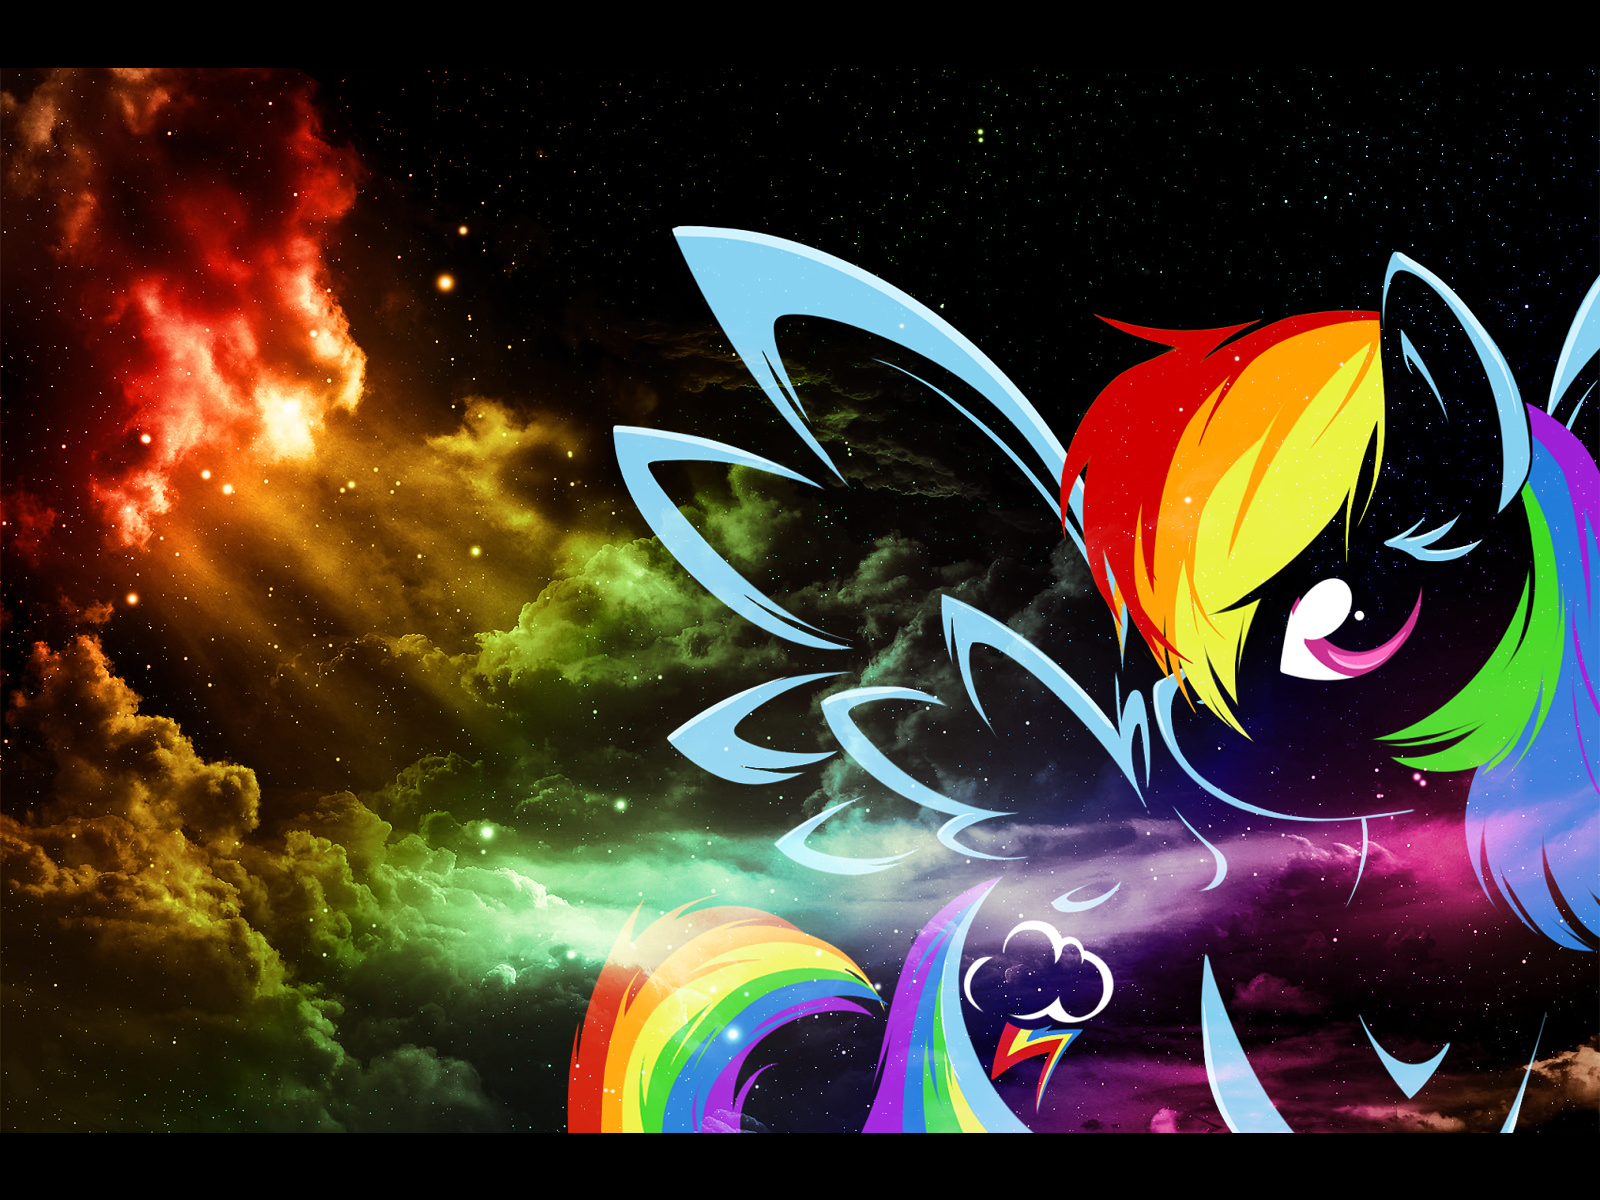 Epic my little pony wallpapers wallpapersafari - Princess luna screensaver ...